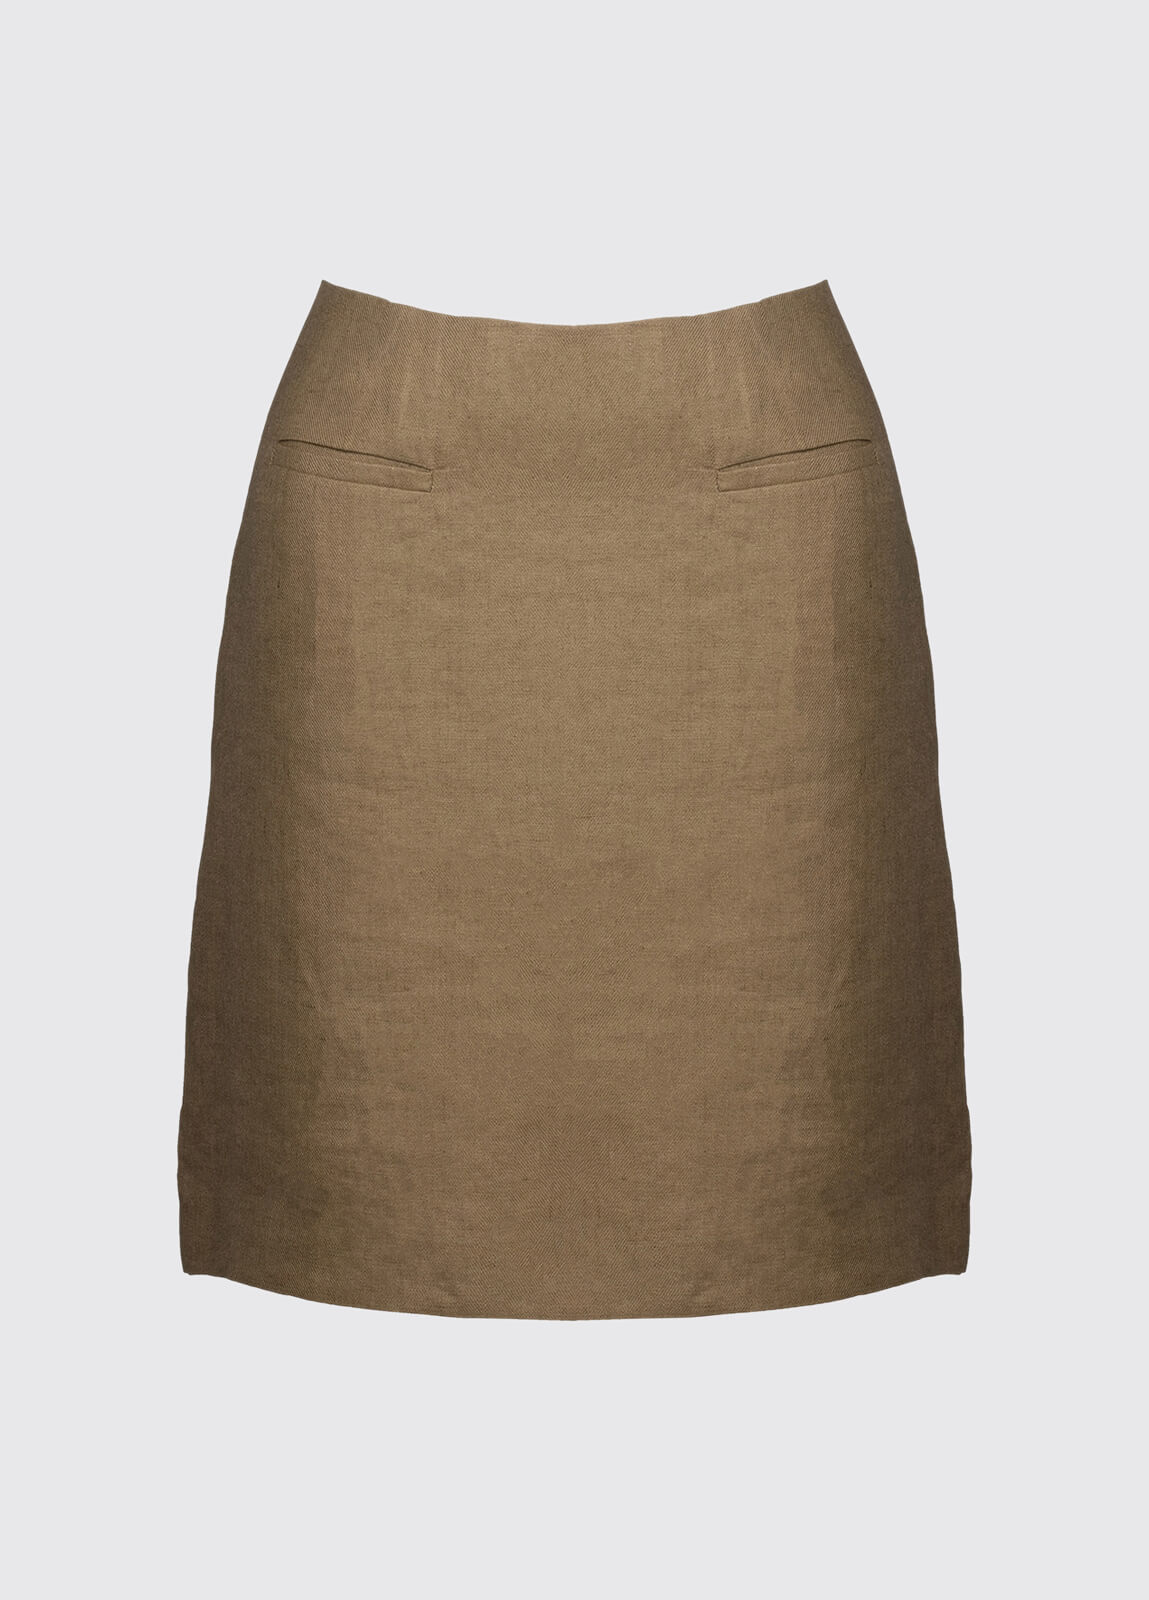 Sunflower Linen Ladies Skirt - Sage